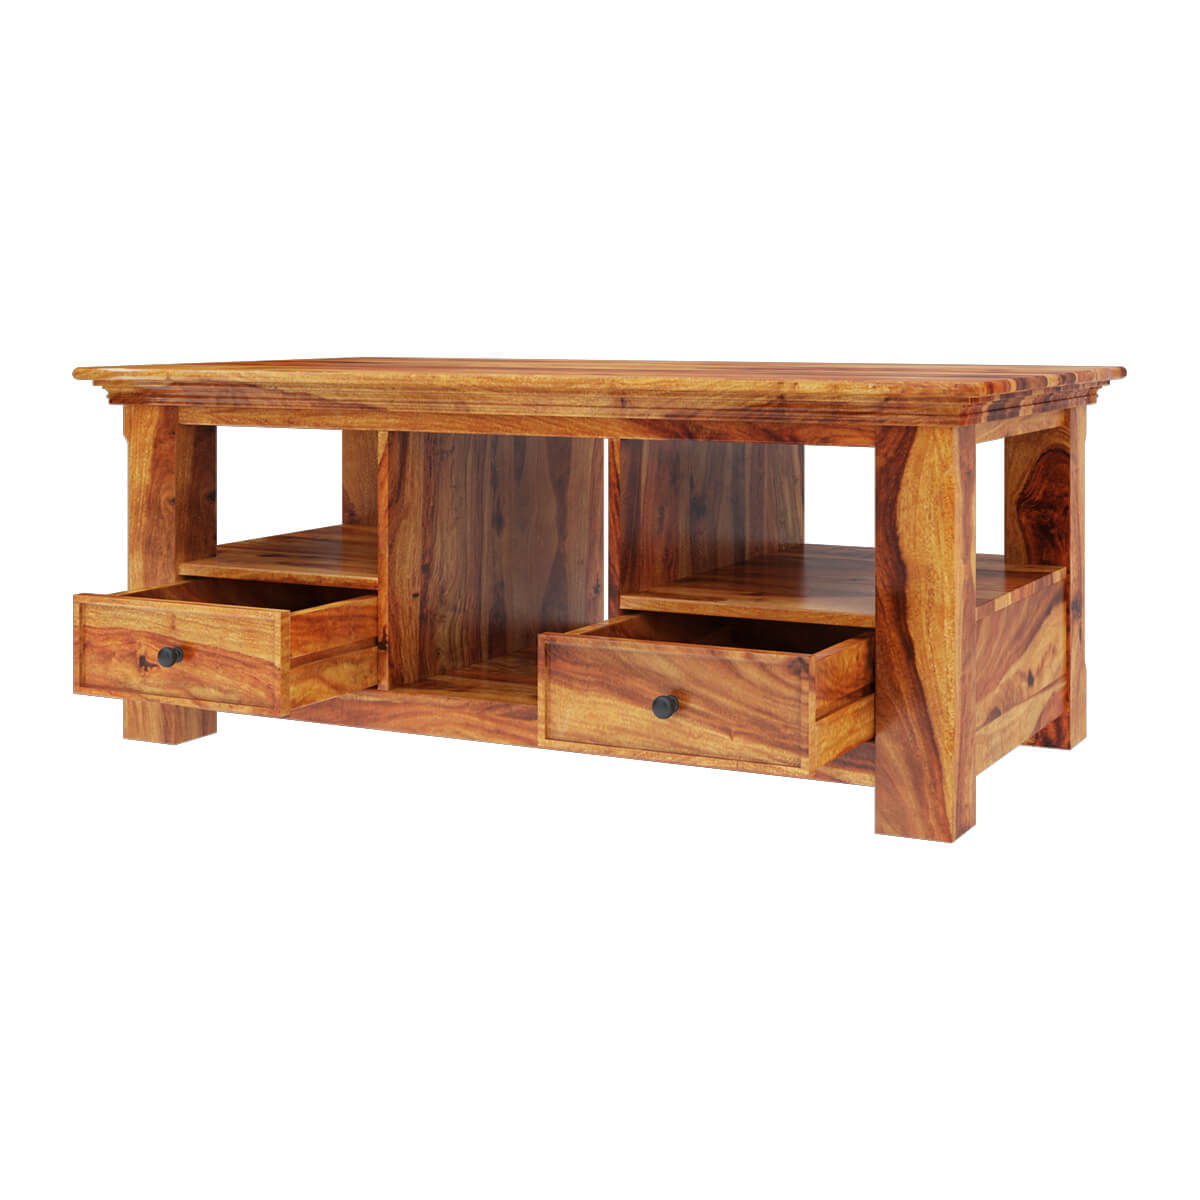 Priscus midcentury modern style solid wood rustic coffee table for Modern chic coffee tables